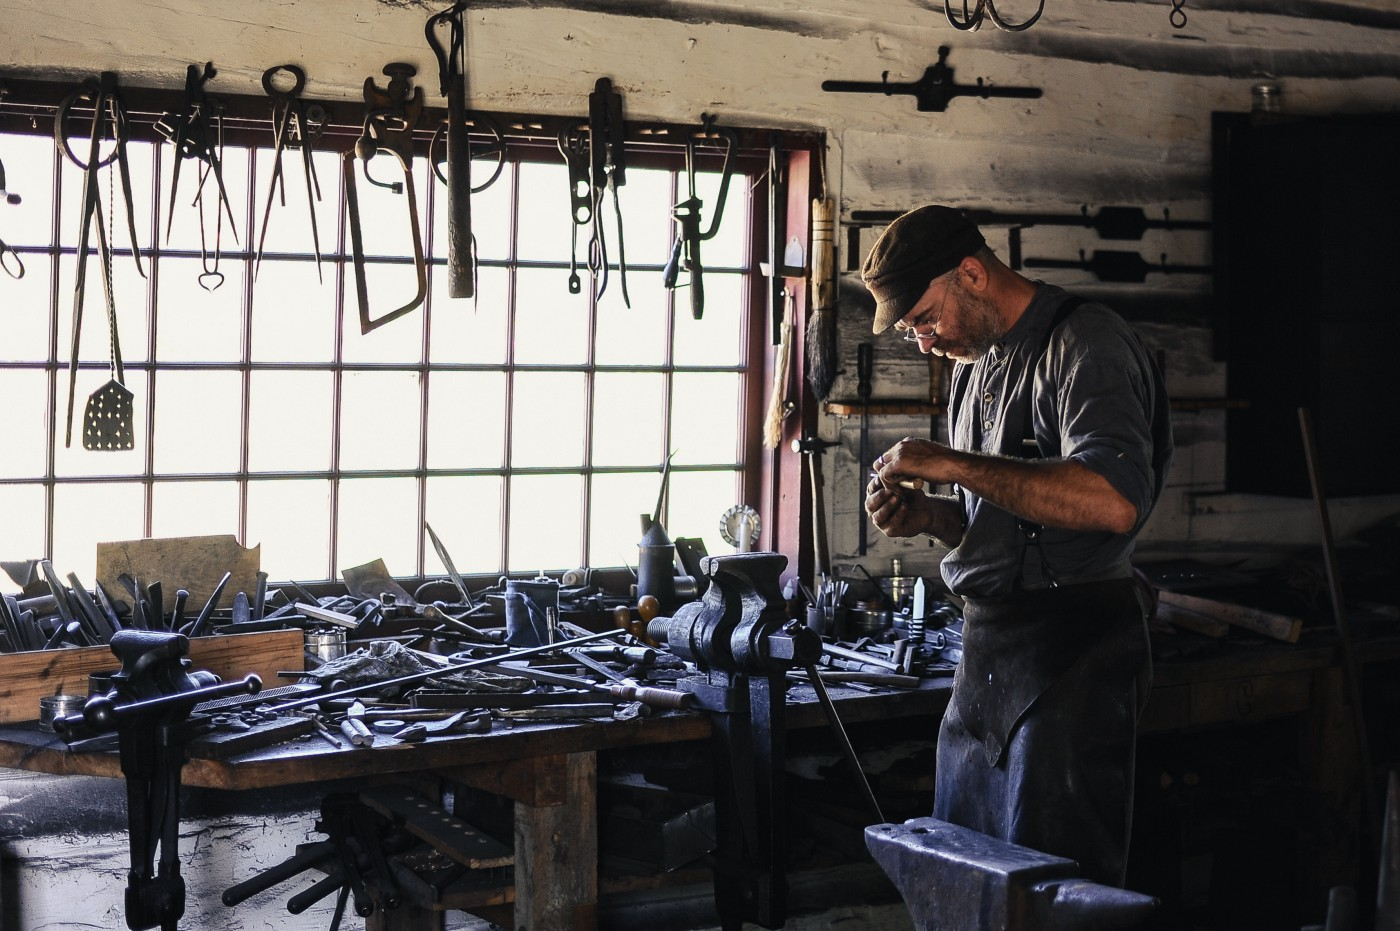 Man wearing leather apron in front of a window. Numerous tools on bench behind him and over the window.